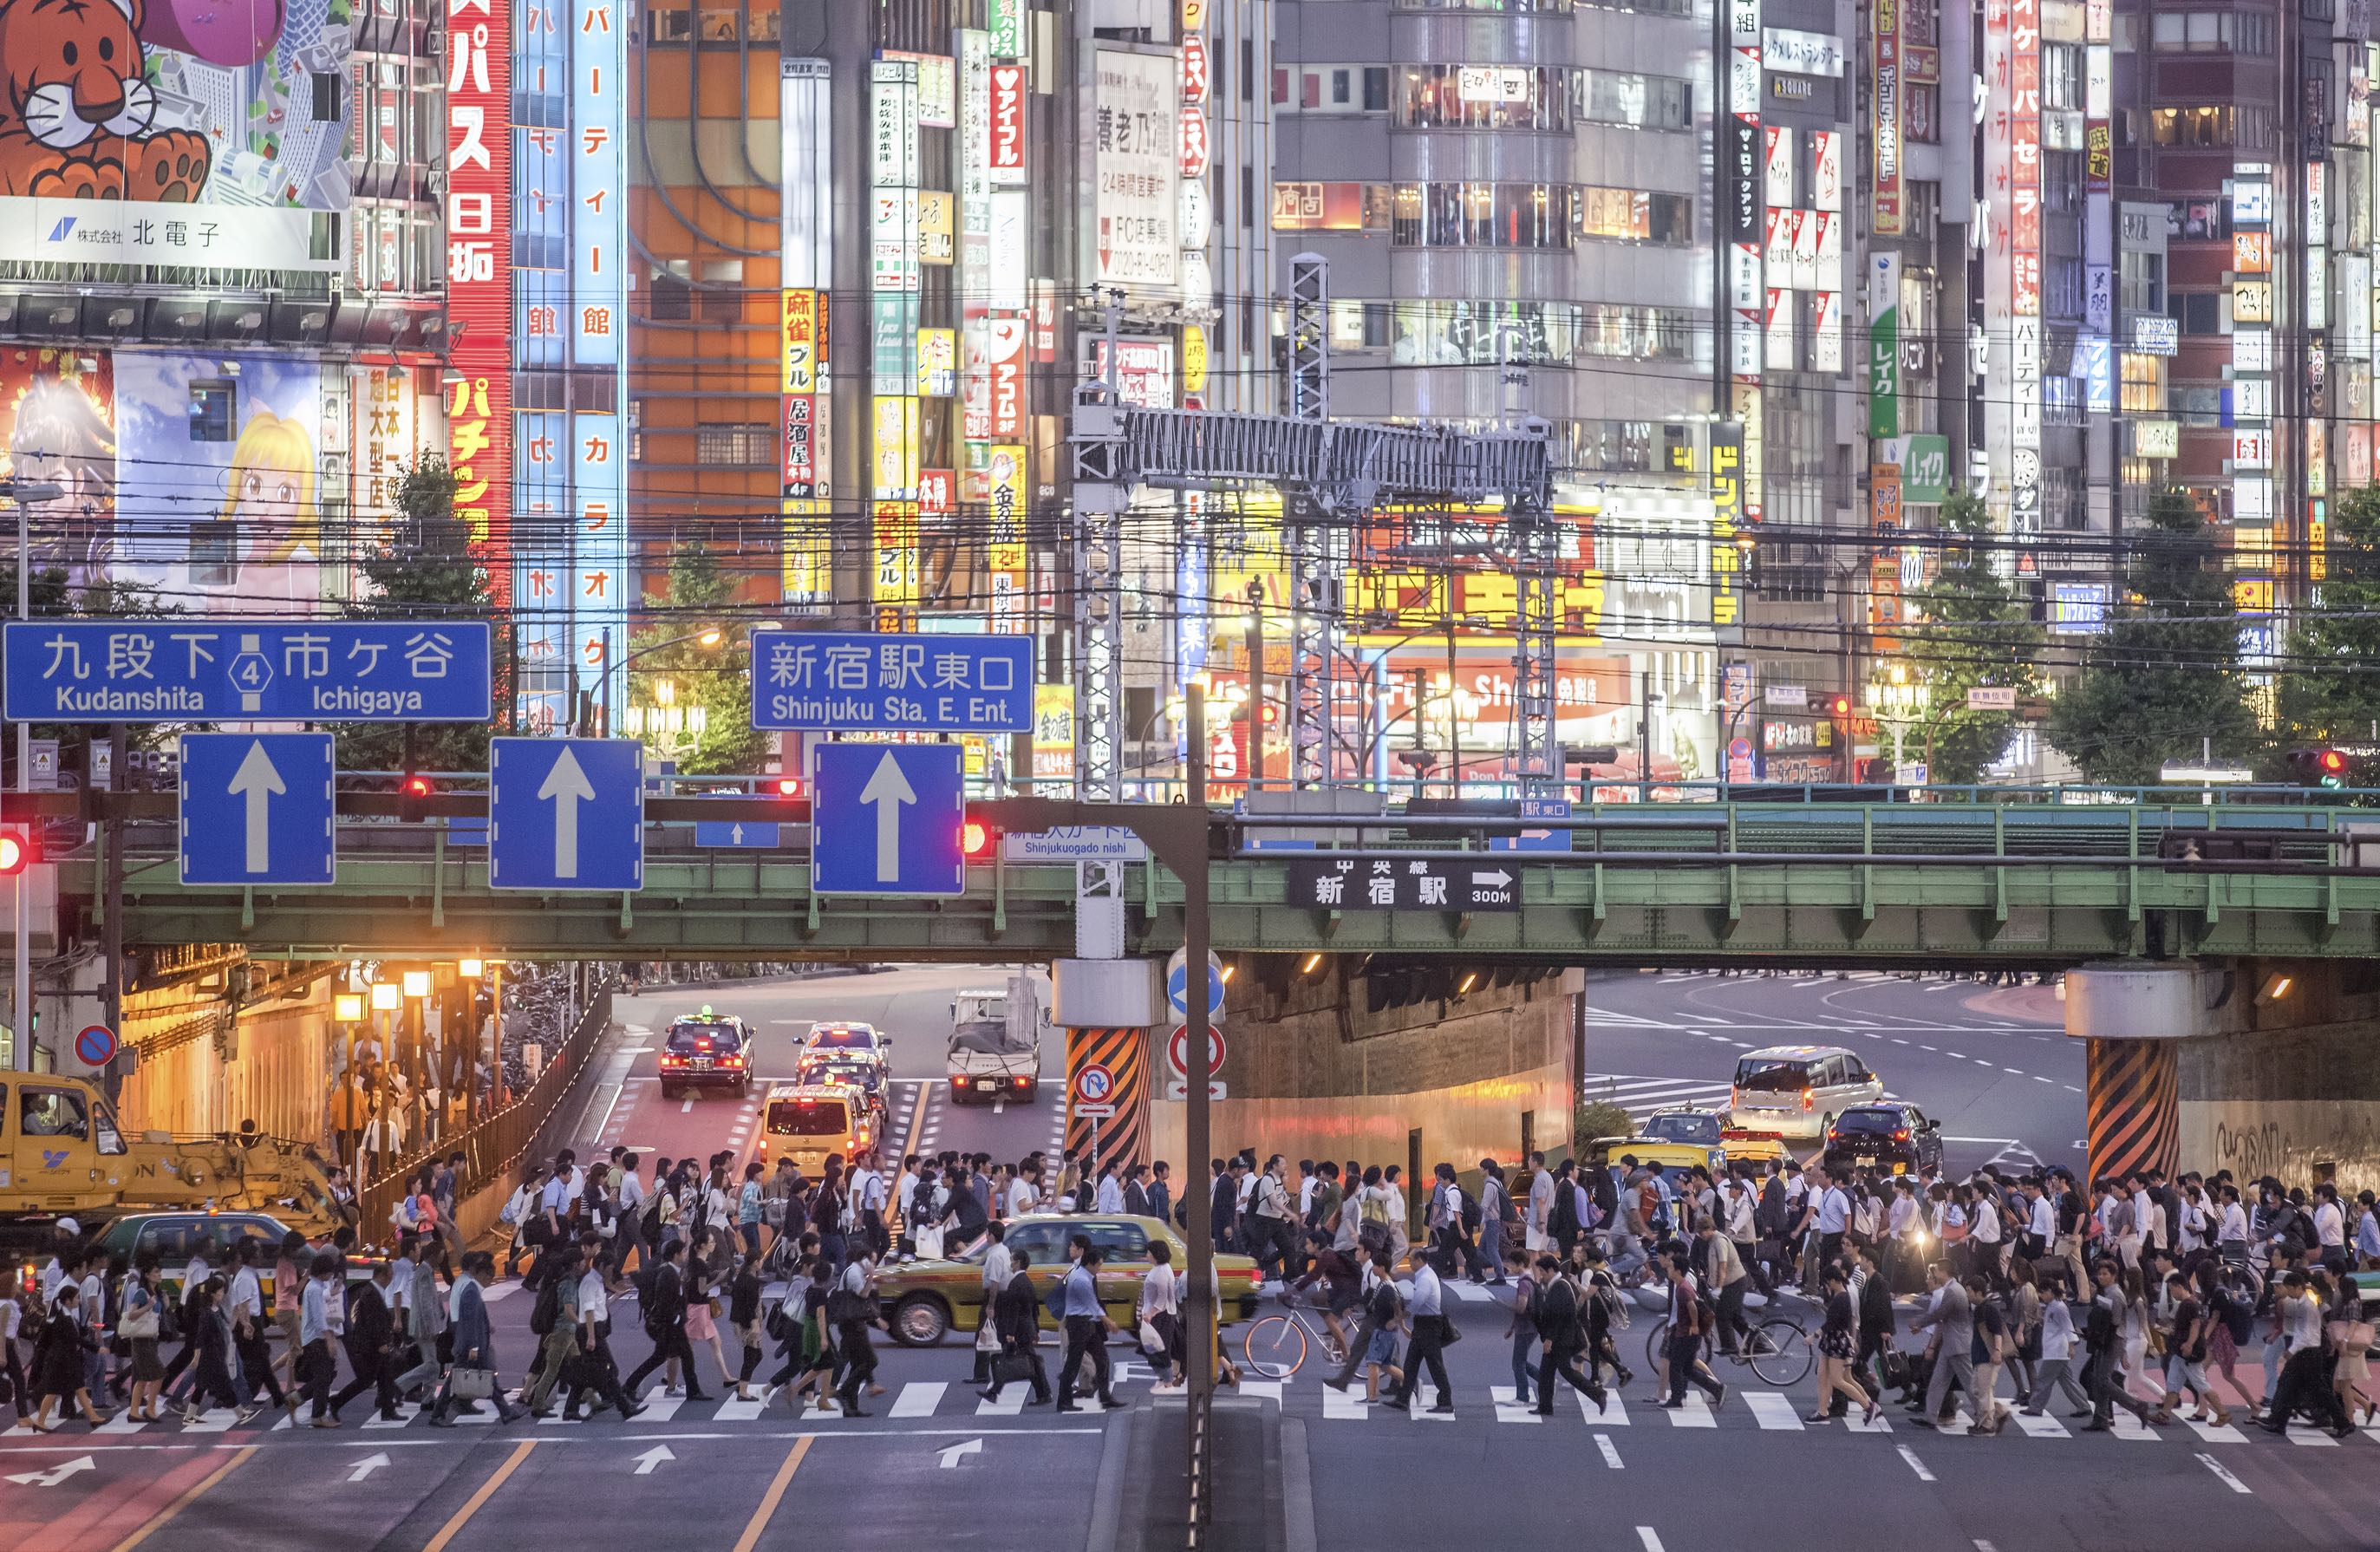 Tokyo Shinjuku Station is the world's busiest railway station